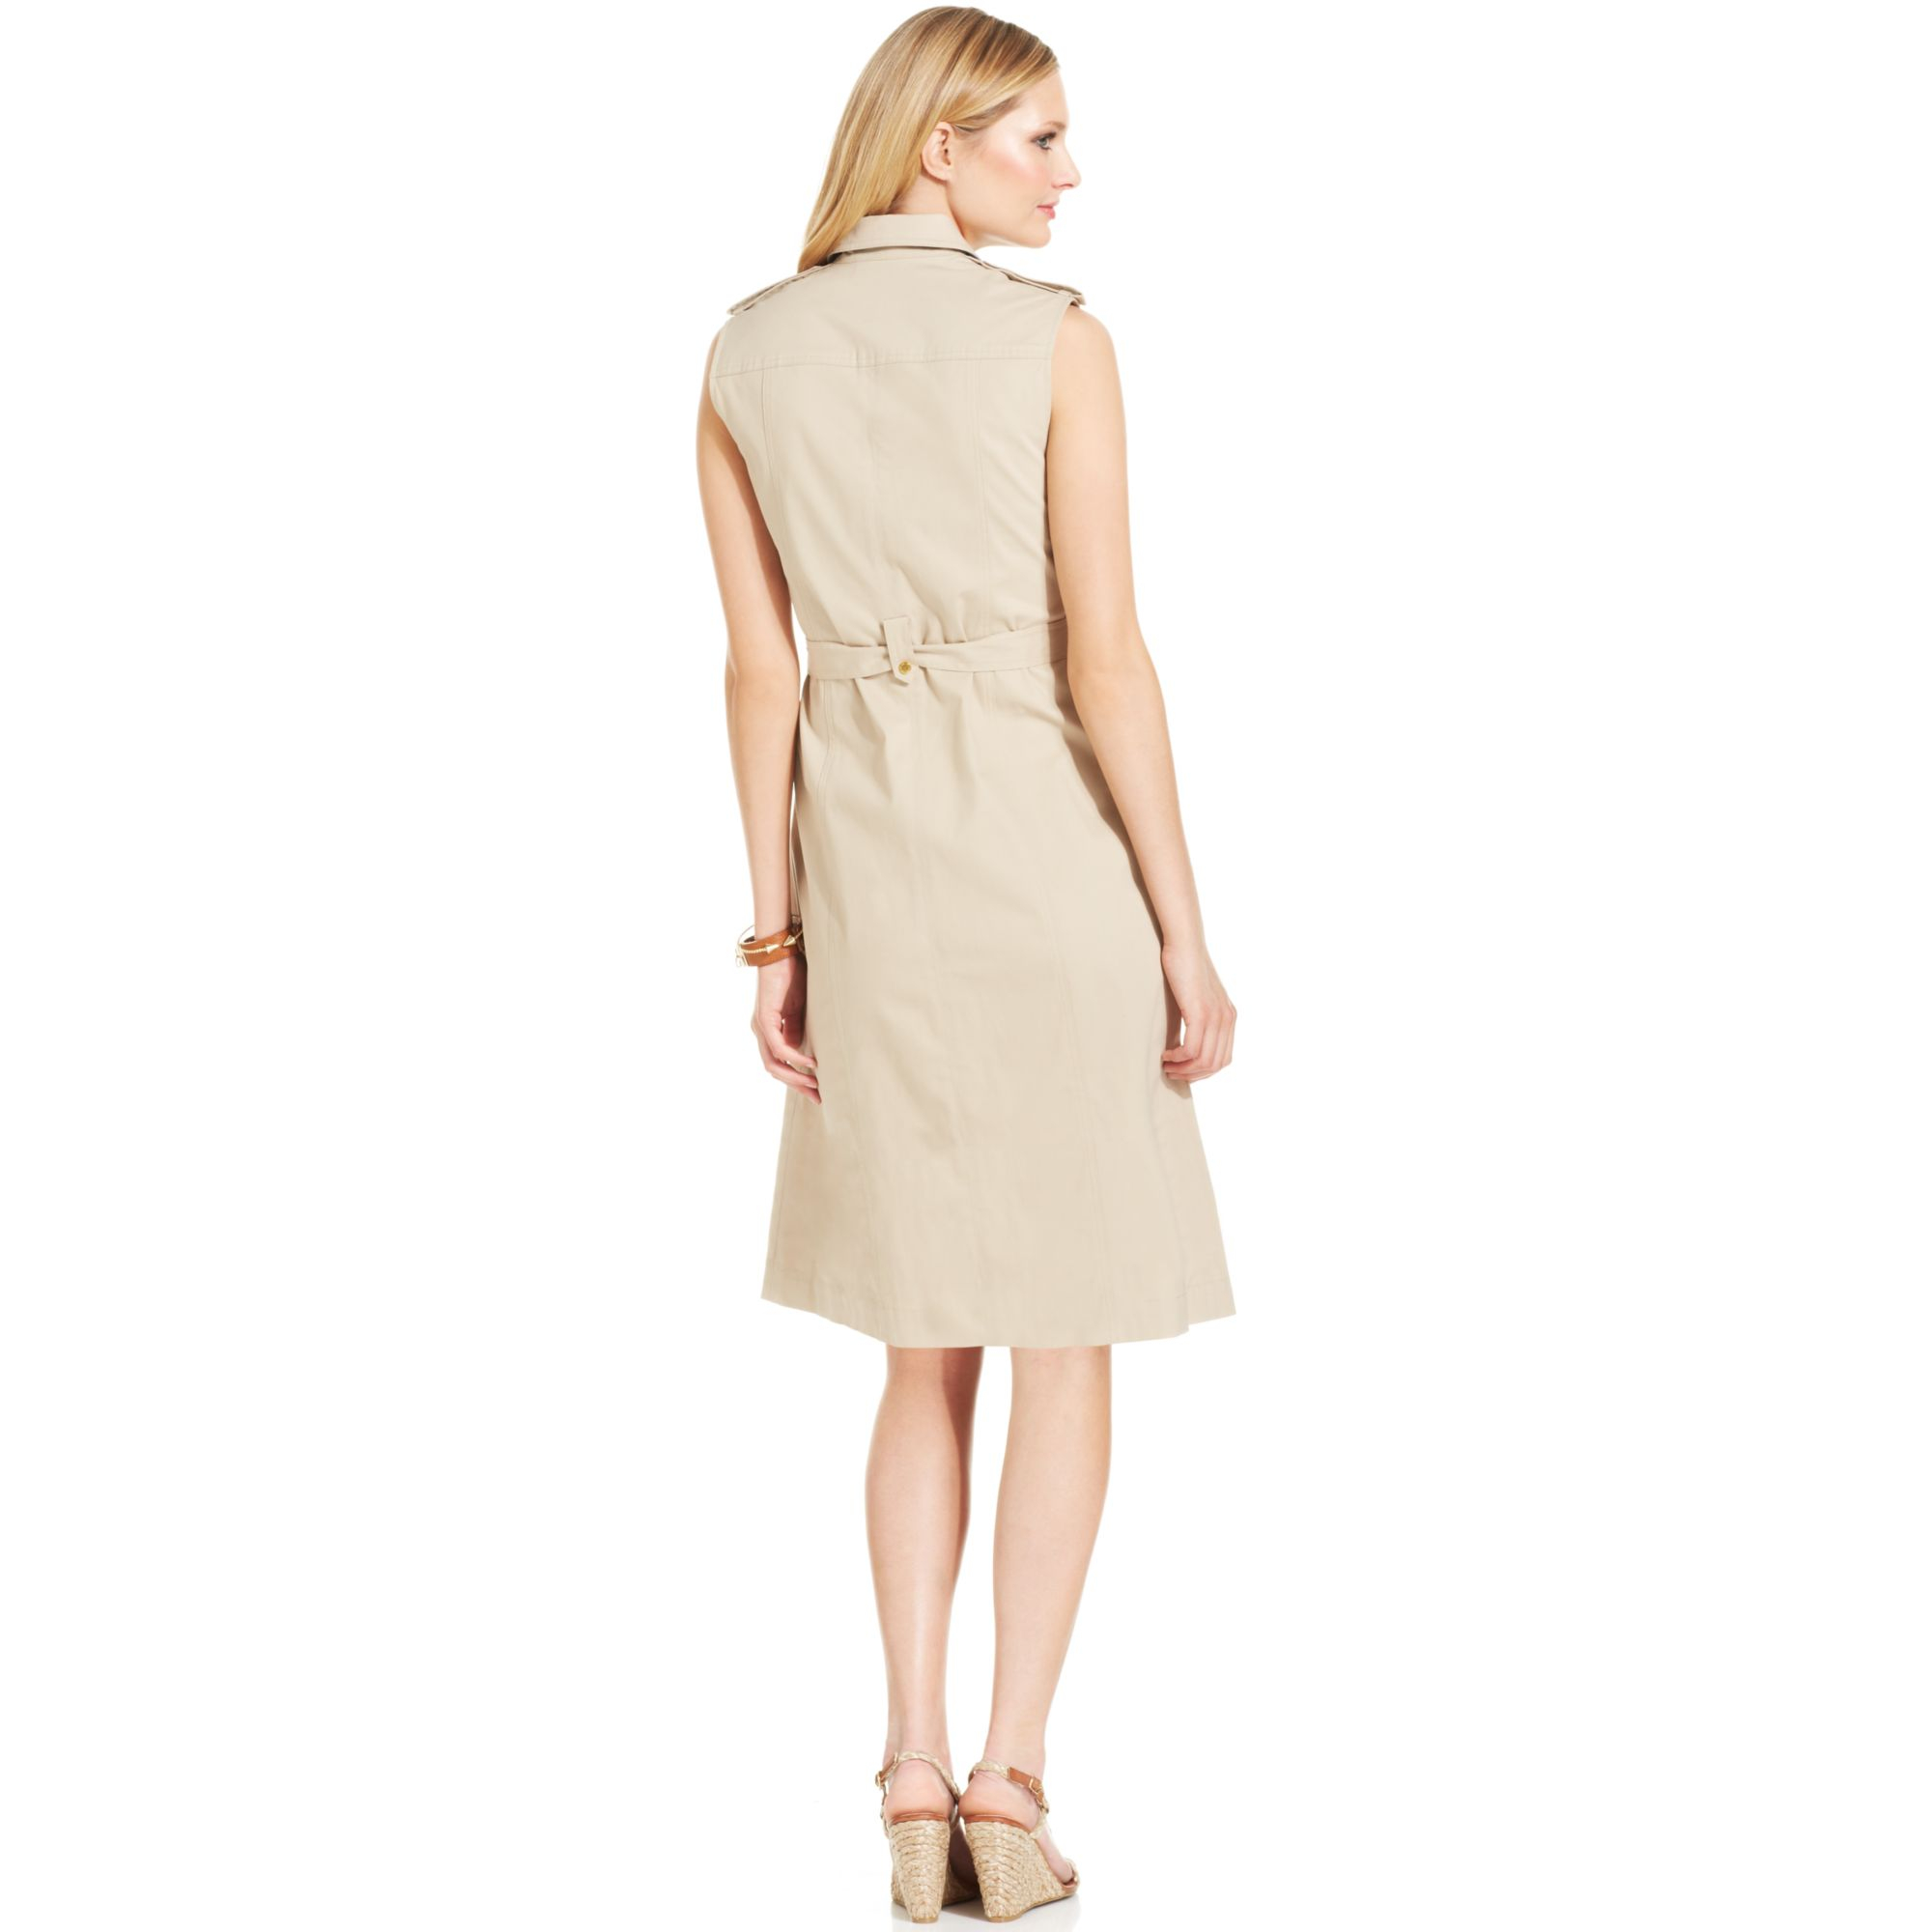 Jones new york signature collection dresses images